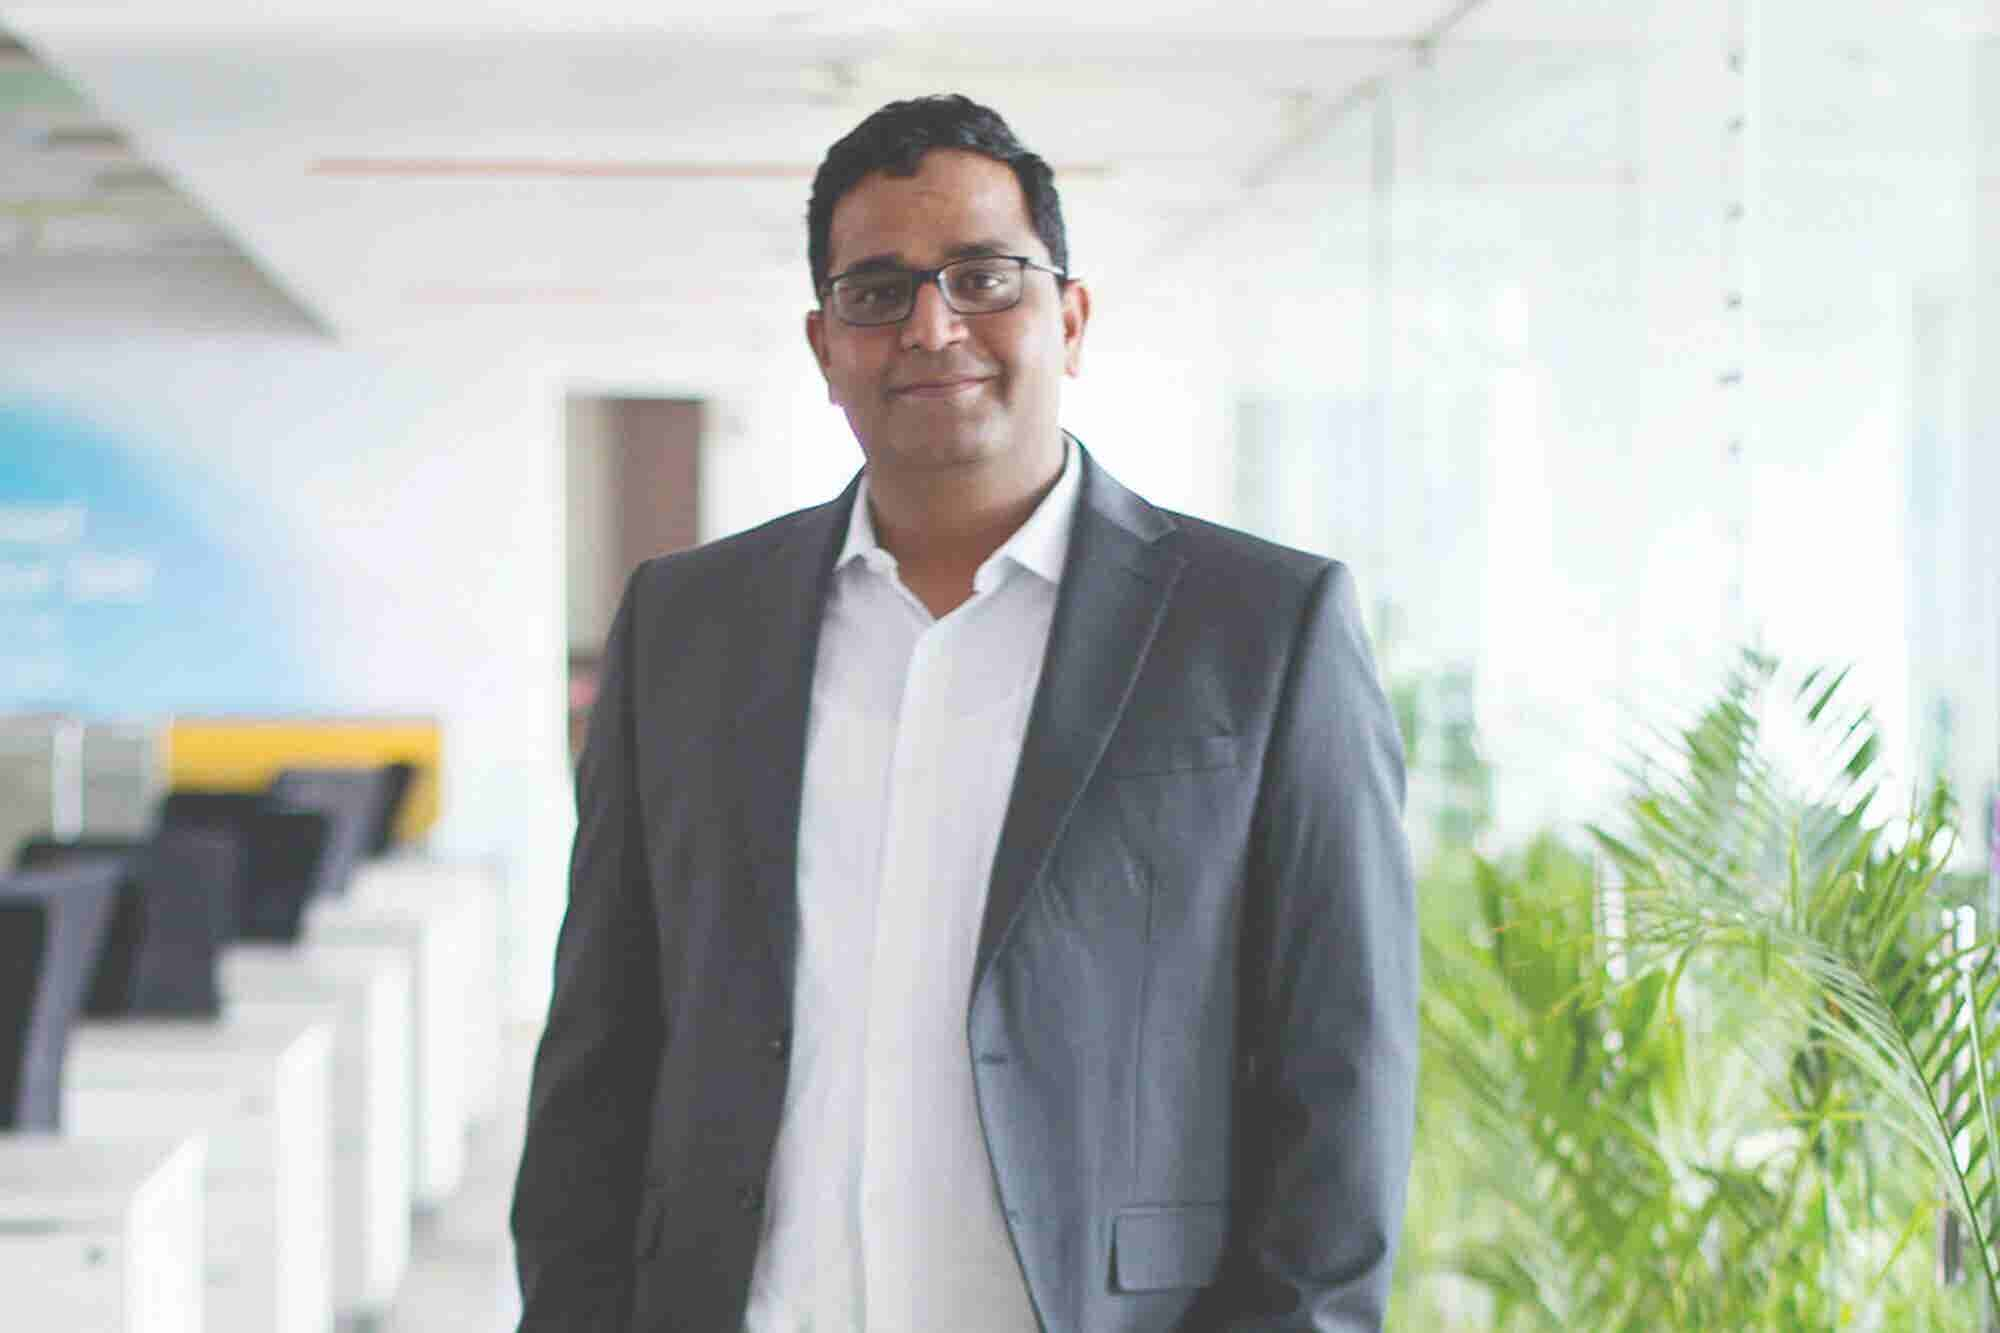 Want to Get Investment From Vijay Shekhar Sharma? Become His Friend